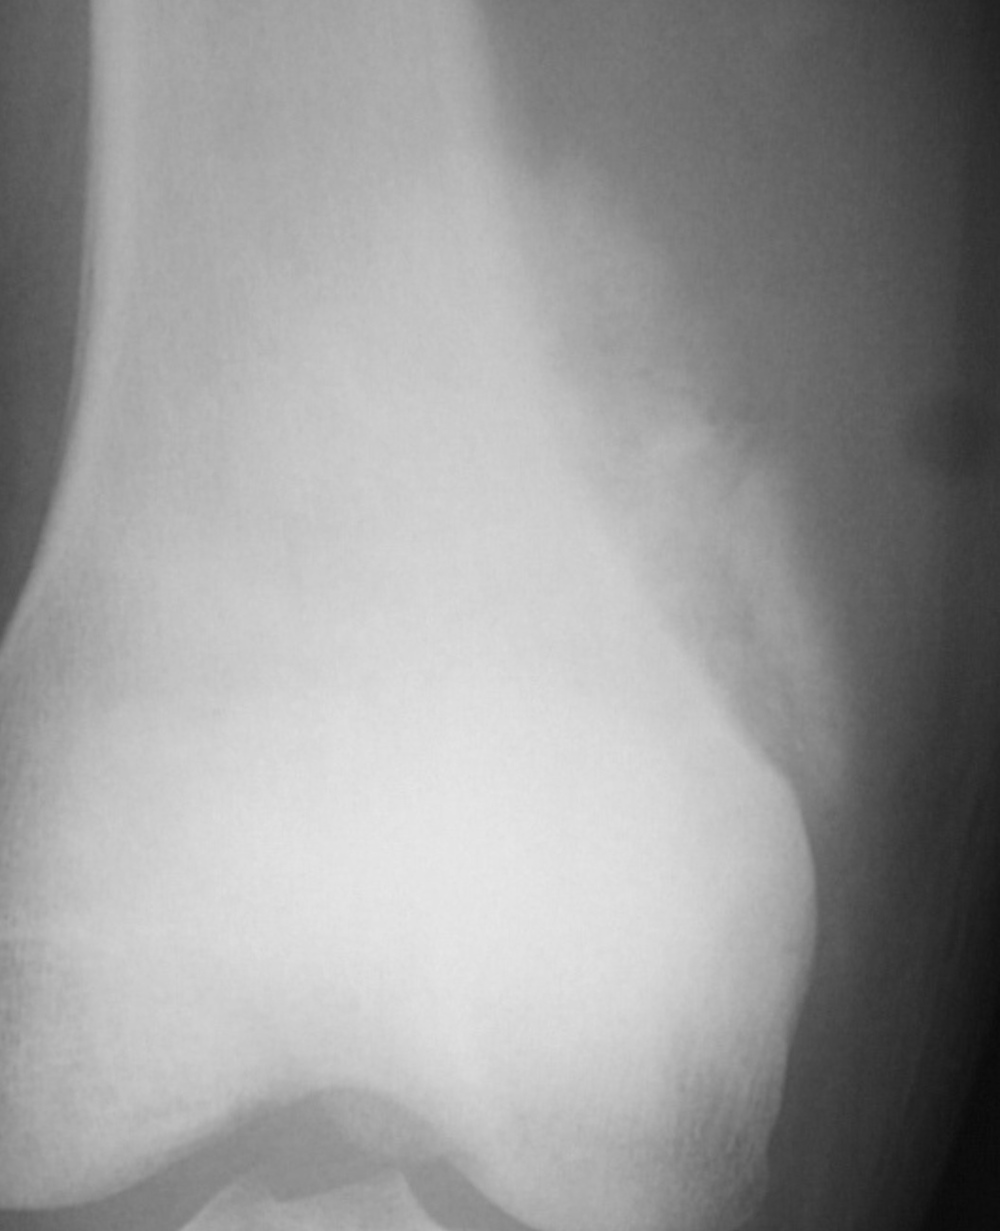 Close up showing calcified soft tissue mass adjacent to femur, highly suspicious for osteosarcoma.